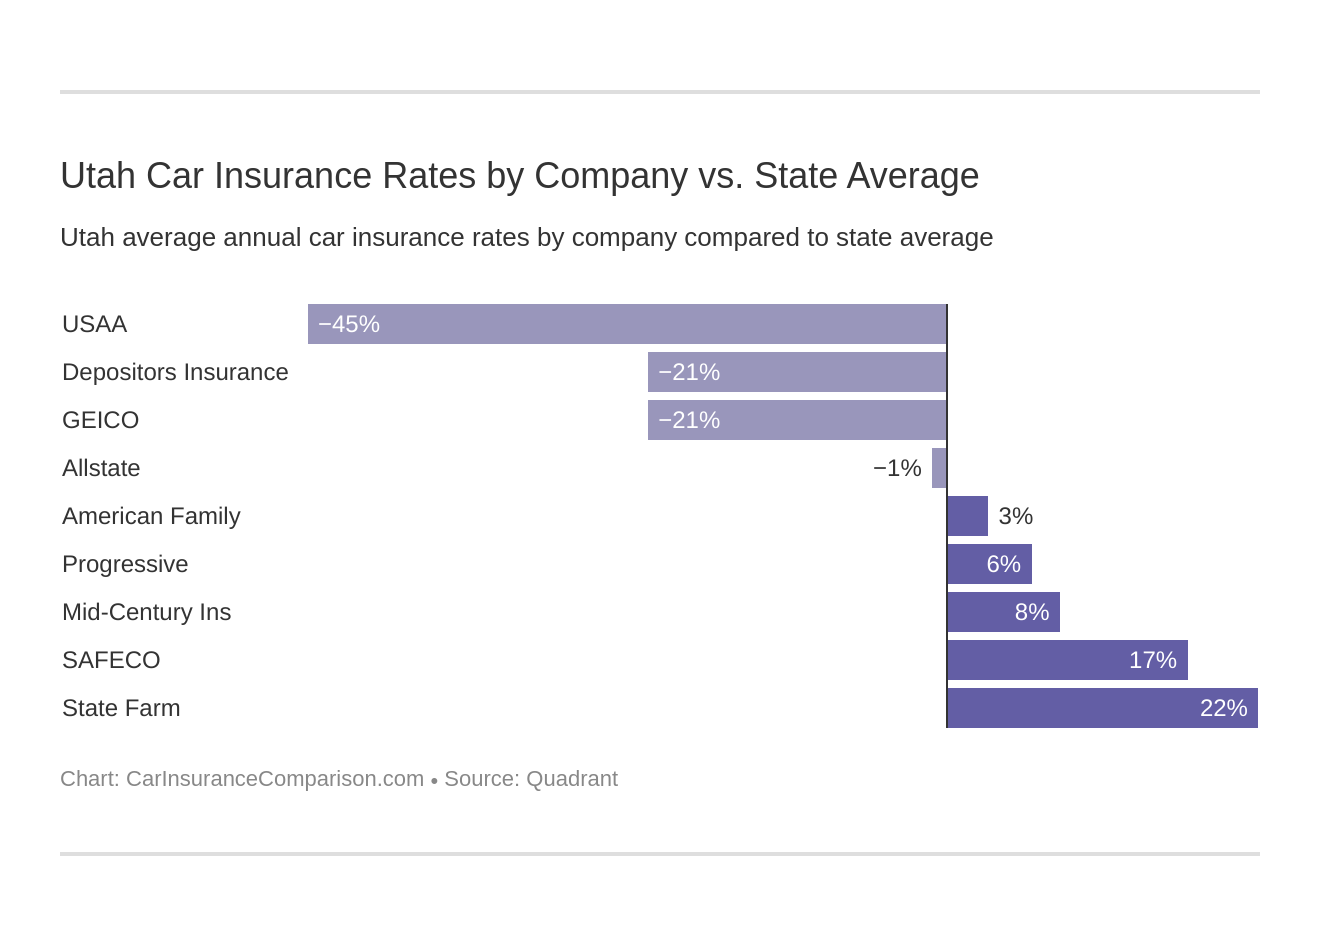 Utah Car Insurance Rates by Company vs. State Average